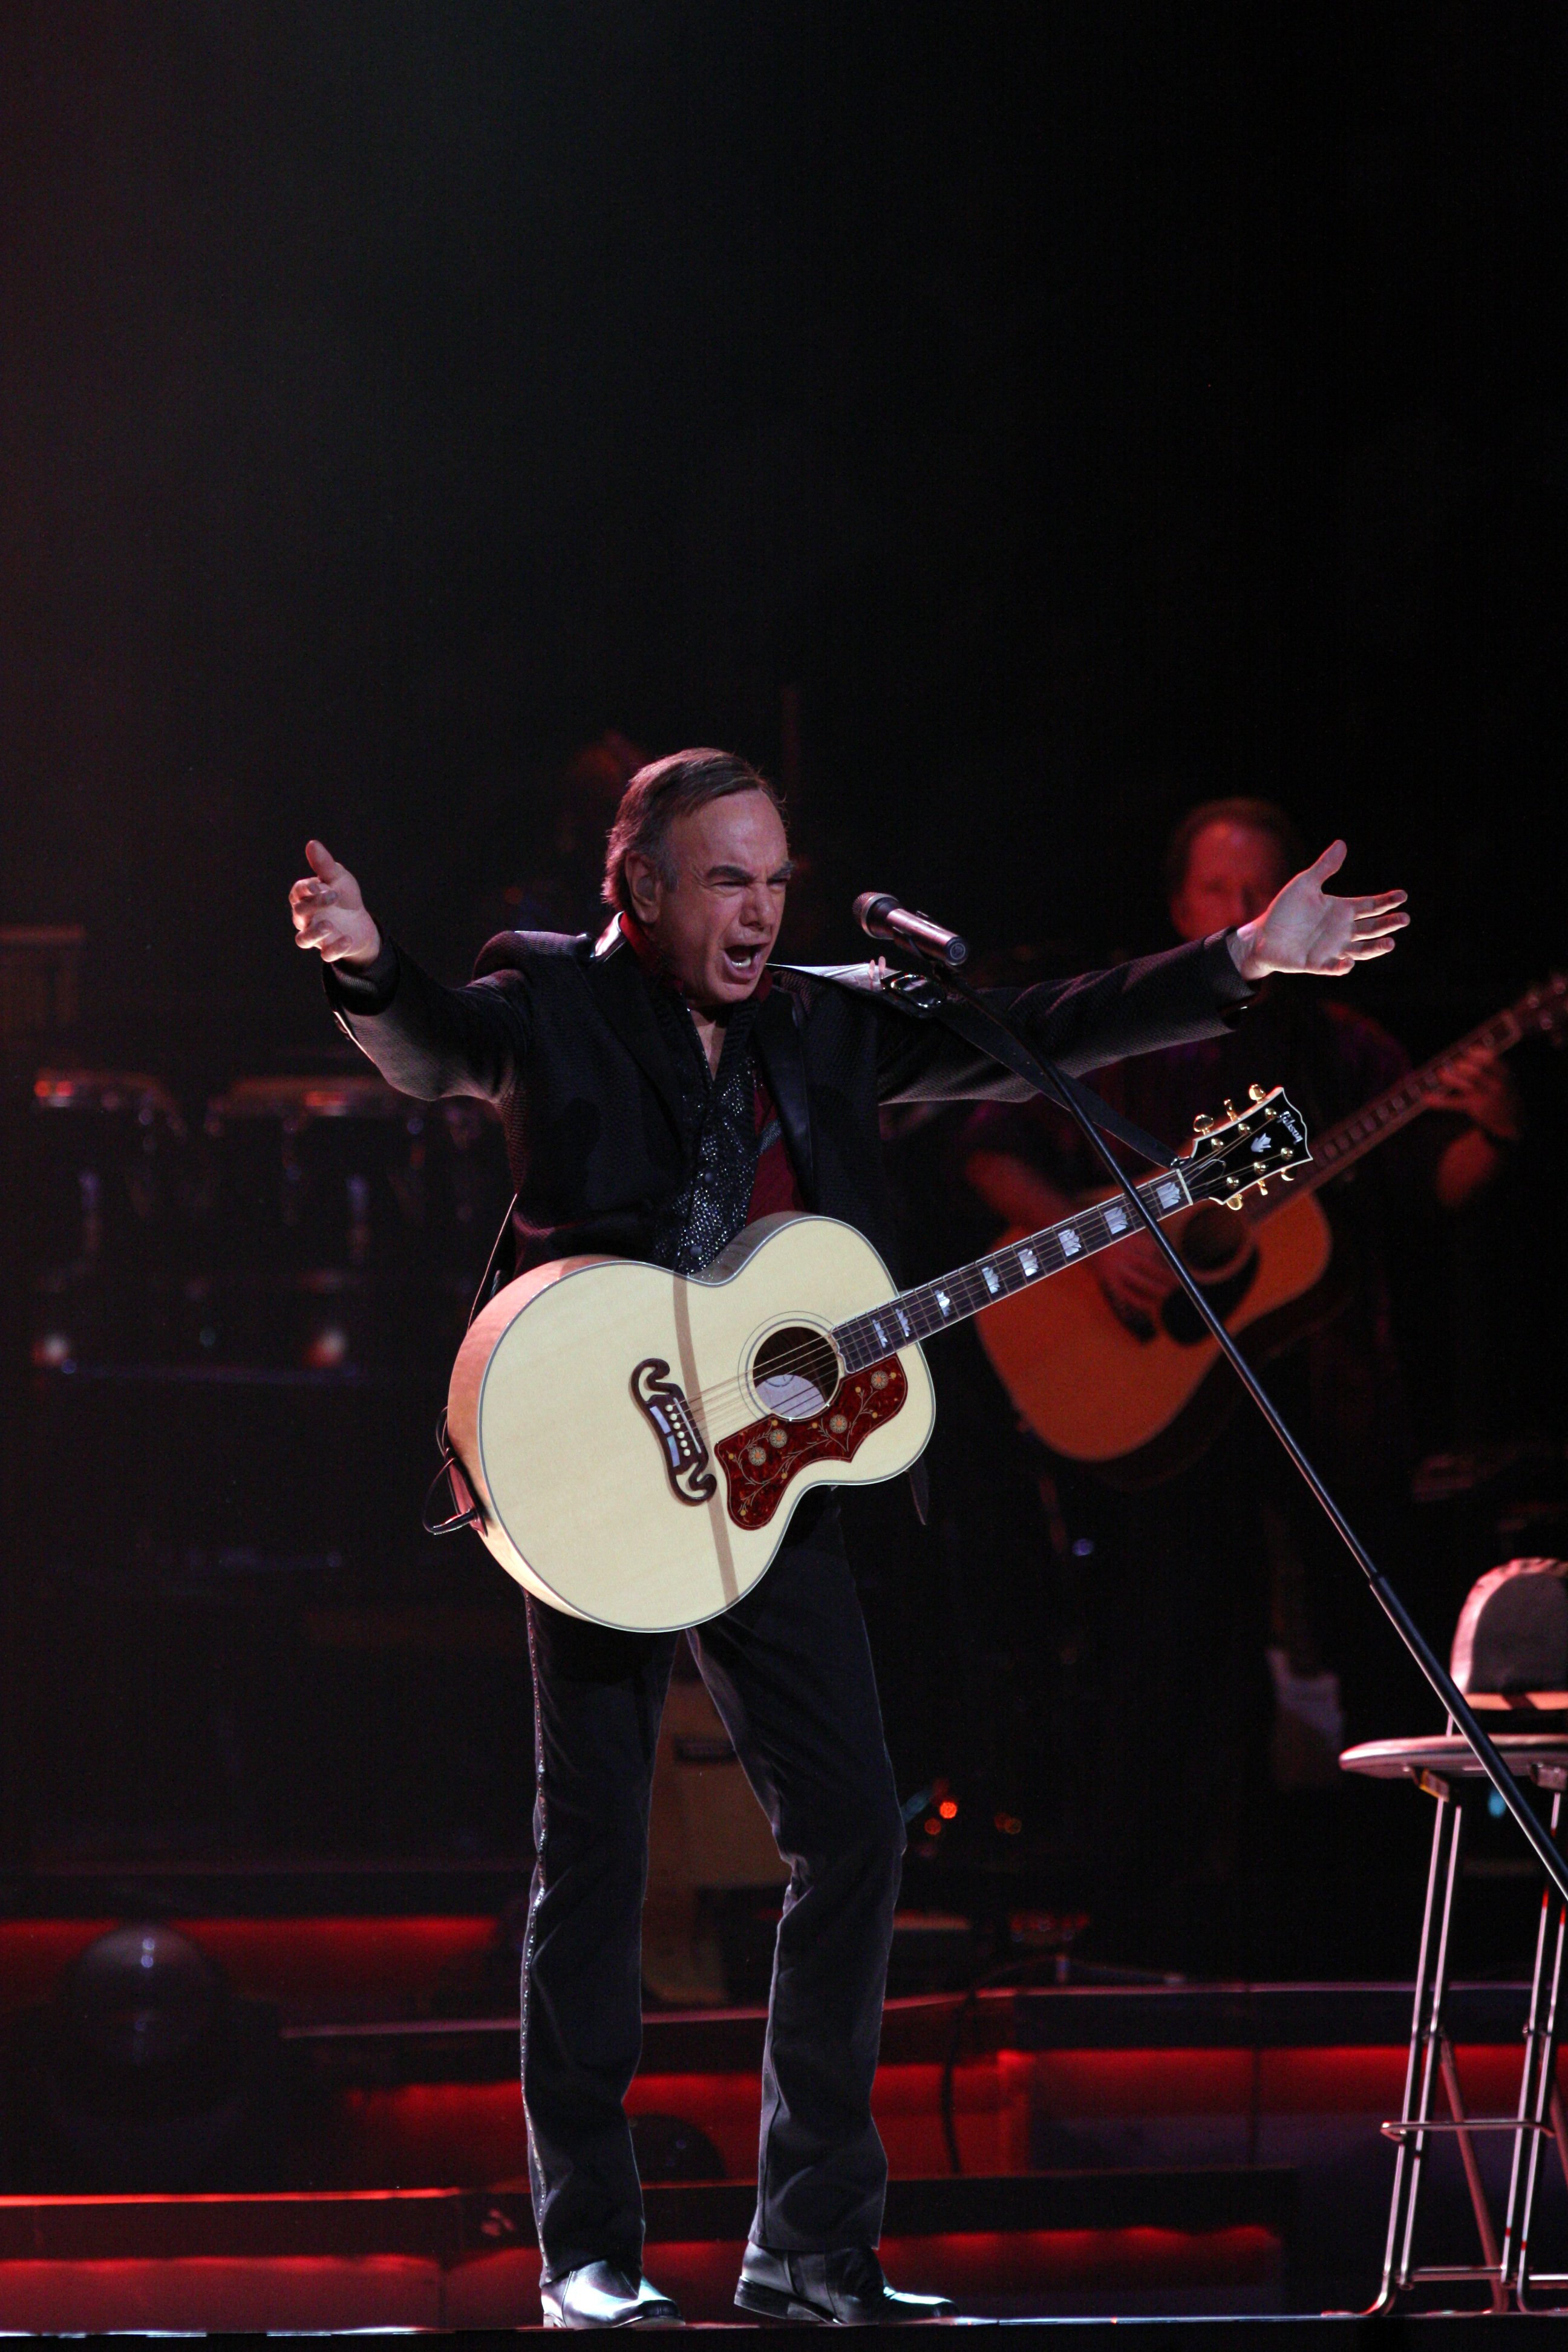 Neil Diamond performs at the Acer Arena on 26 March 2011. | Source: Wikimedia Commons.